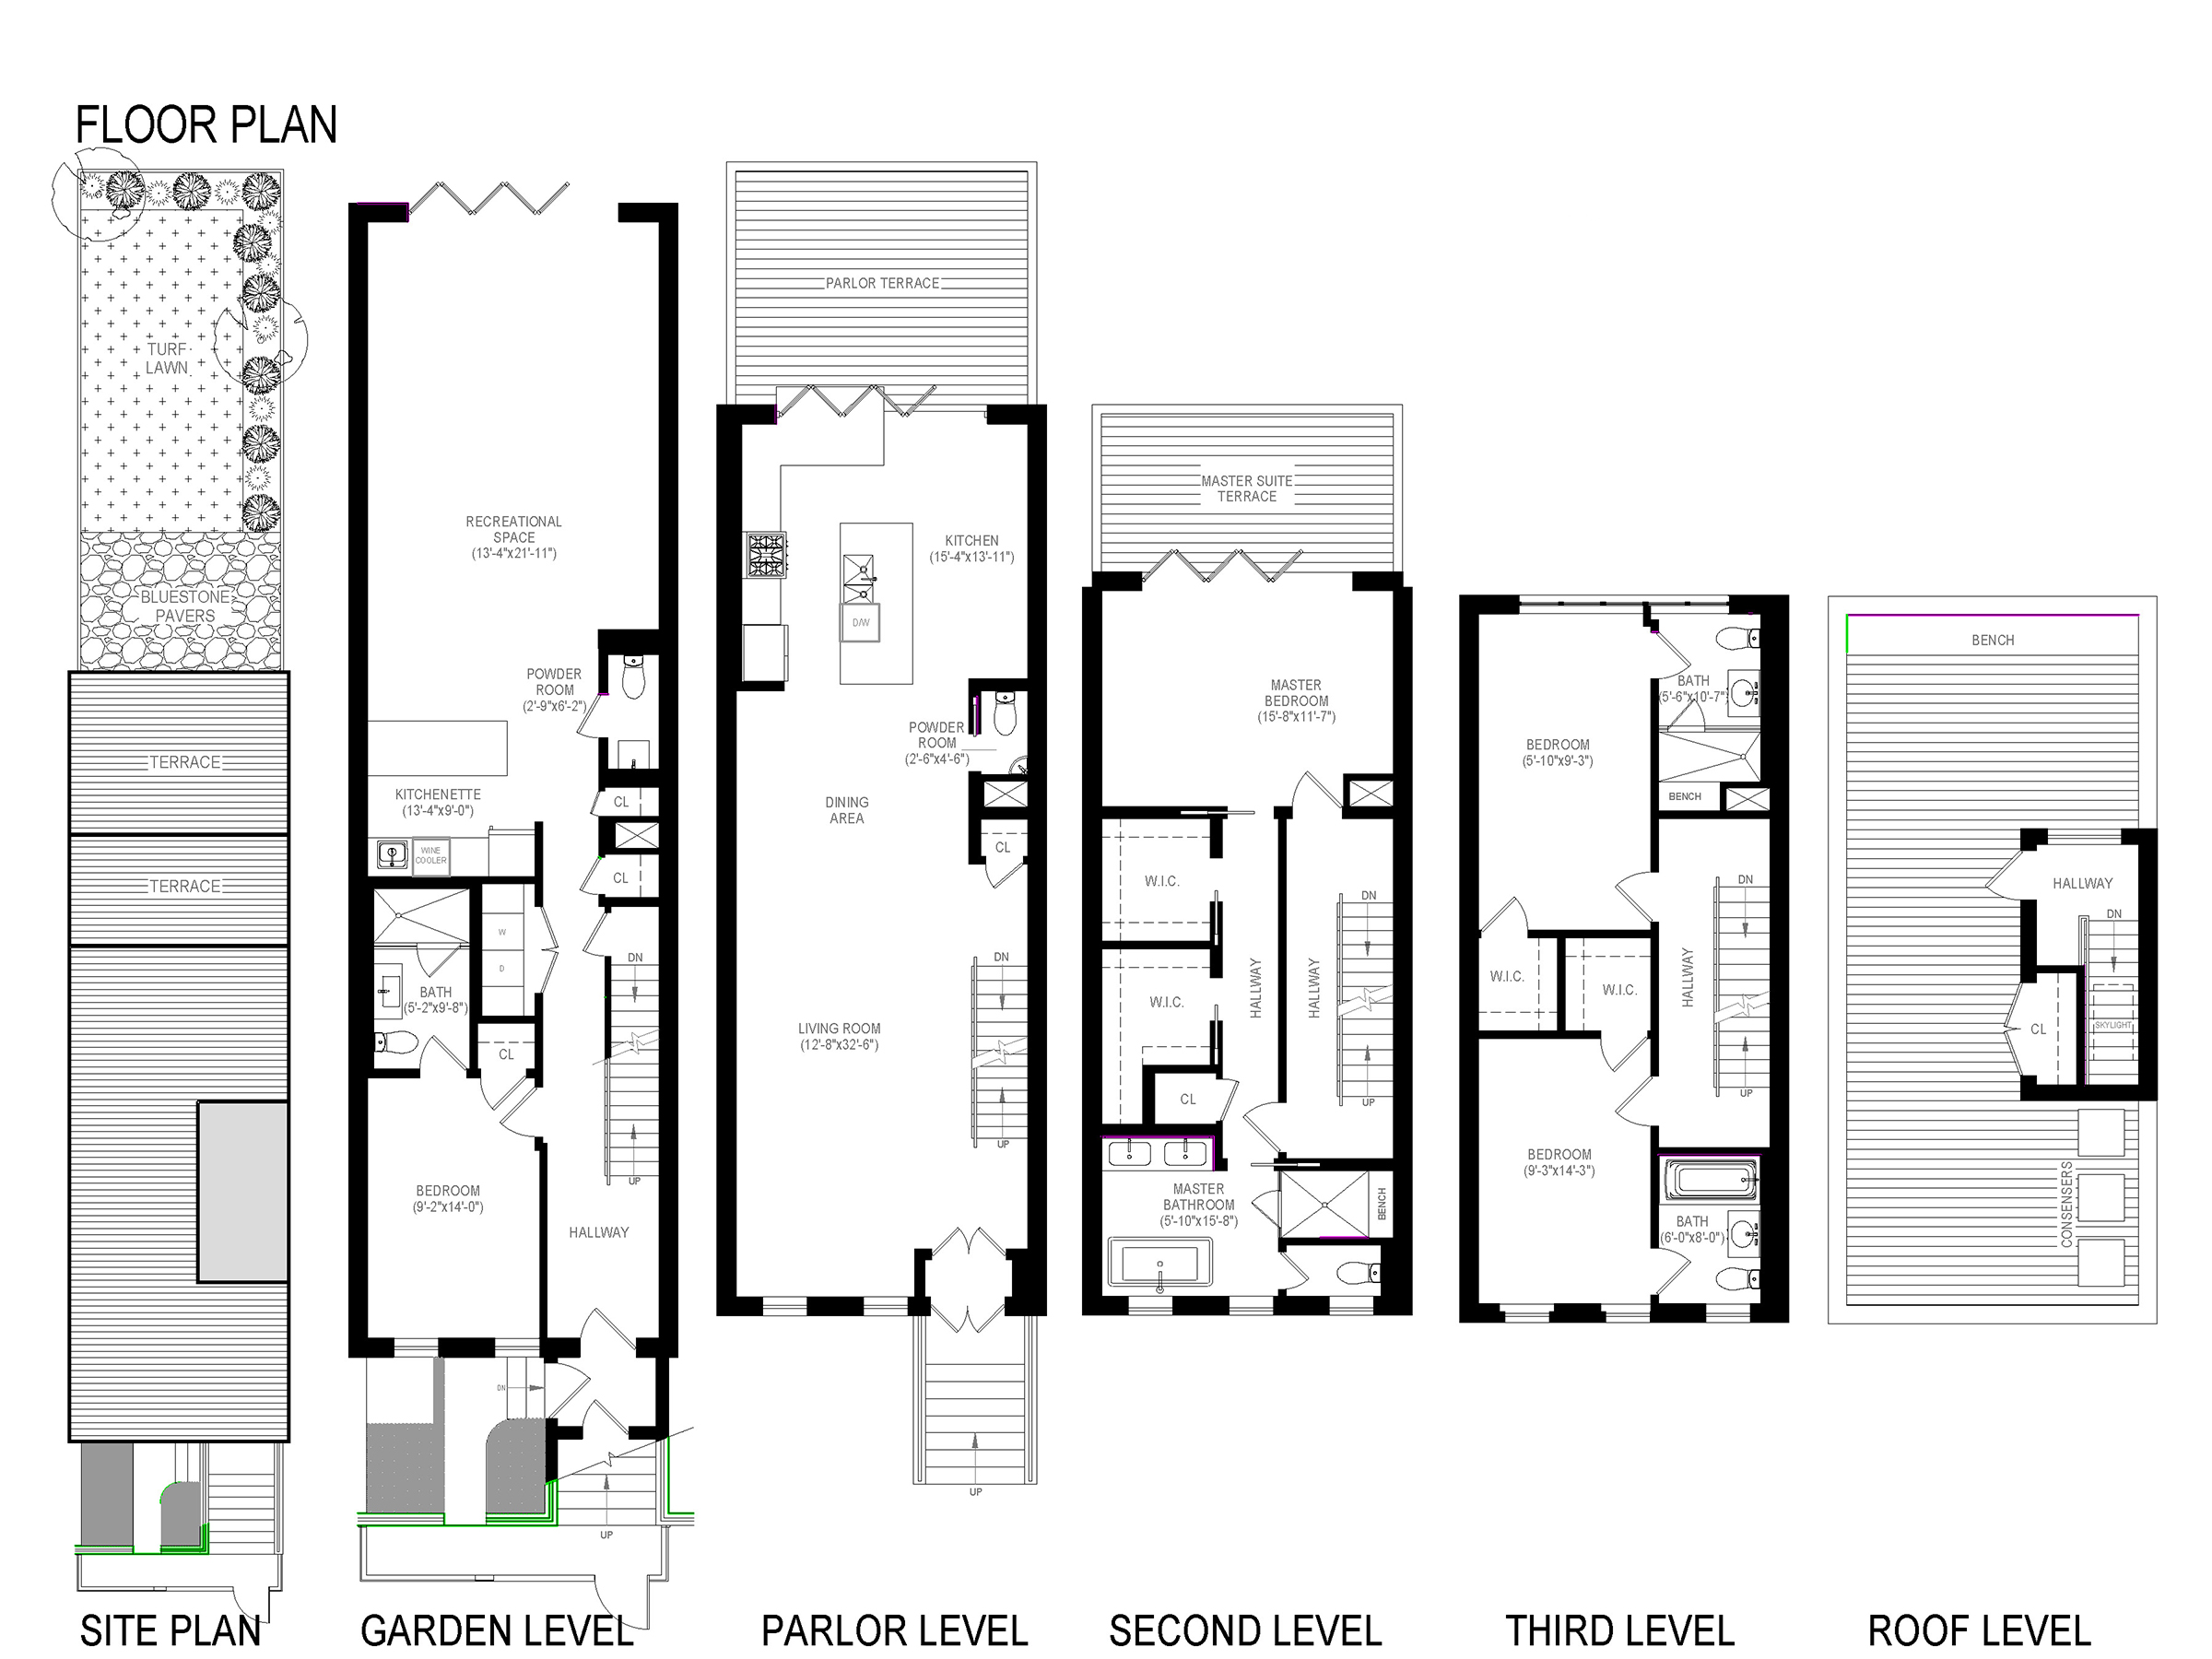 2016 04 14_Marketing Floor Plans_29 Lincoln Place_web.jpg